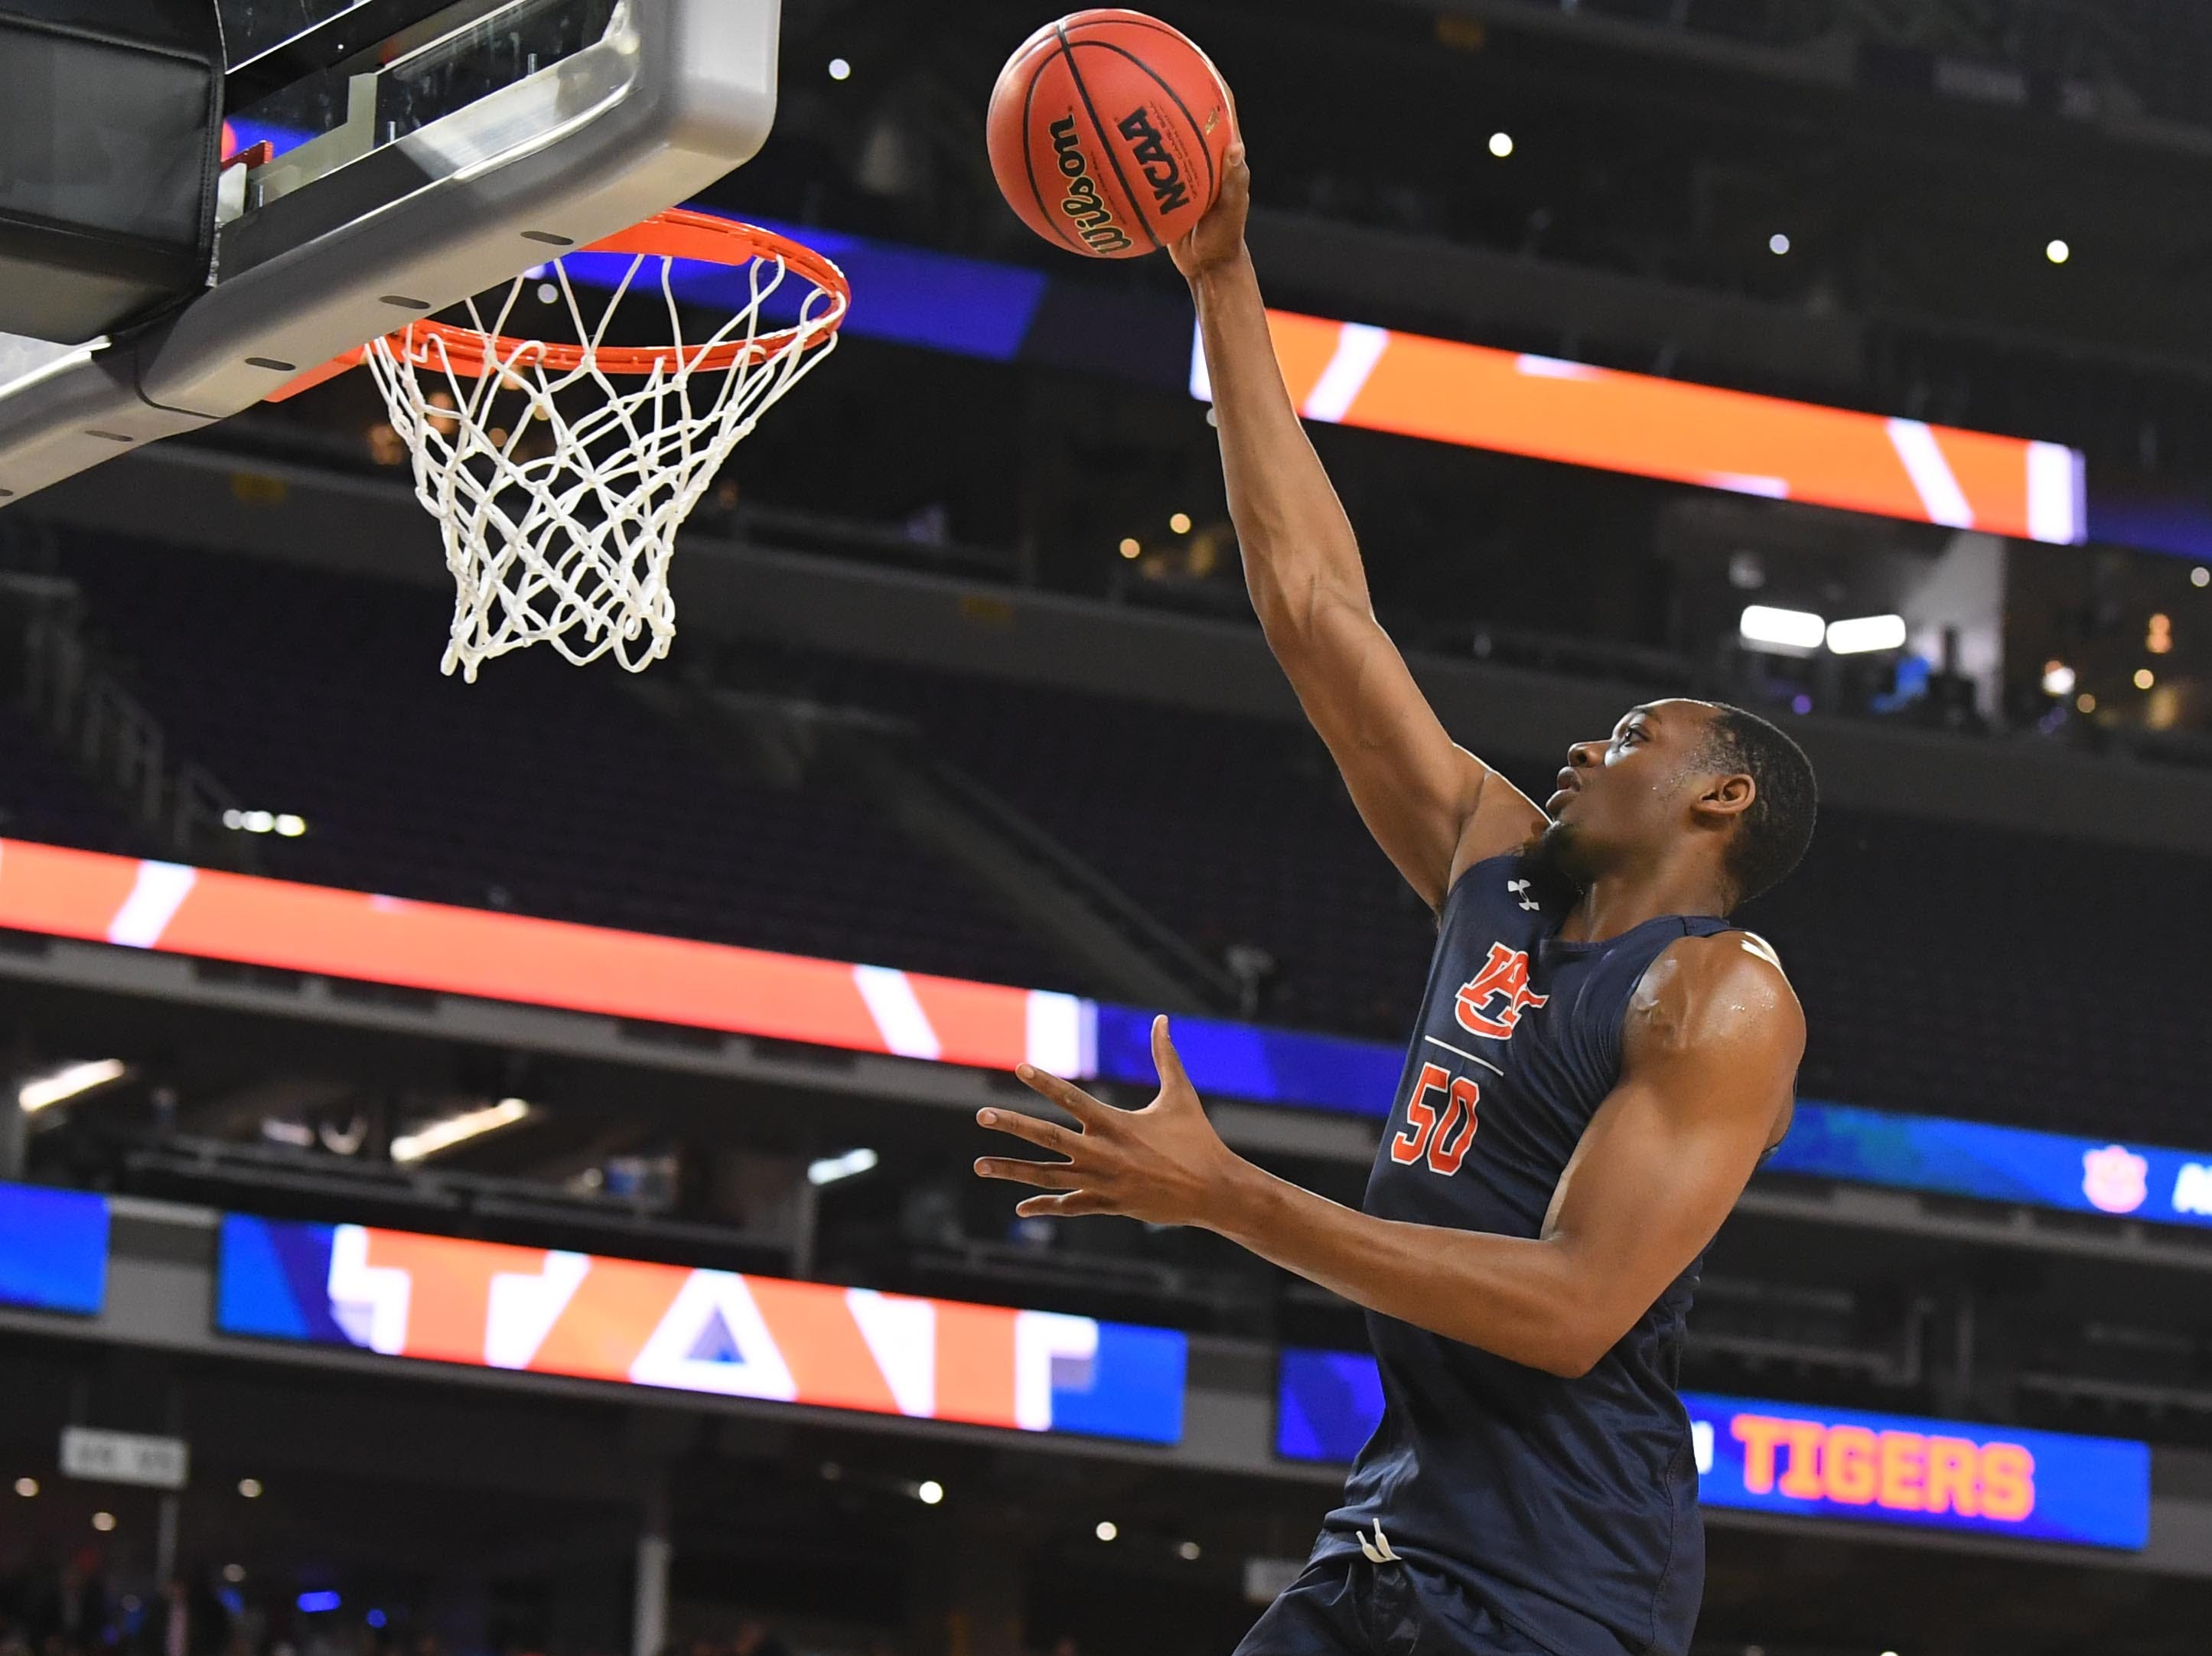 Apr 5, 2019; Minneapolis, MN, USA; Auburn Tigers center Austin Wiley (50) shoots during practice for the 2019 men's Final Four at US Bank Stadium. Mandatory Credit: Robert Deutsch-USA TODAY Sports